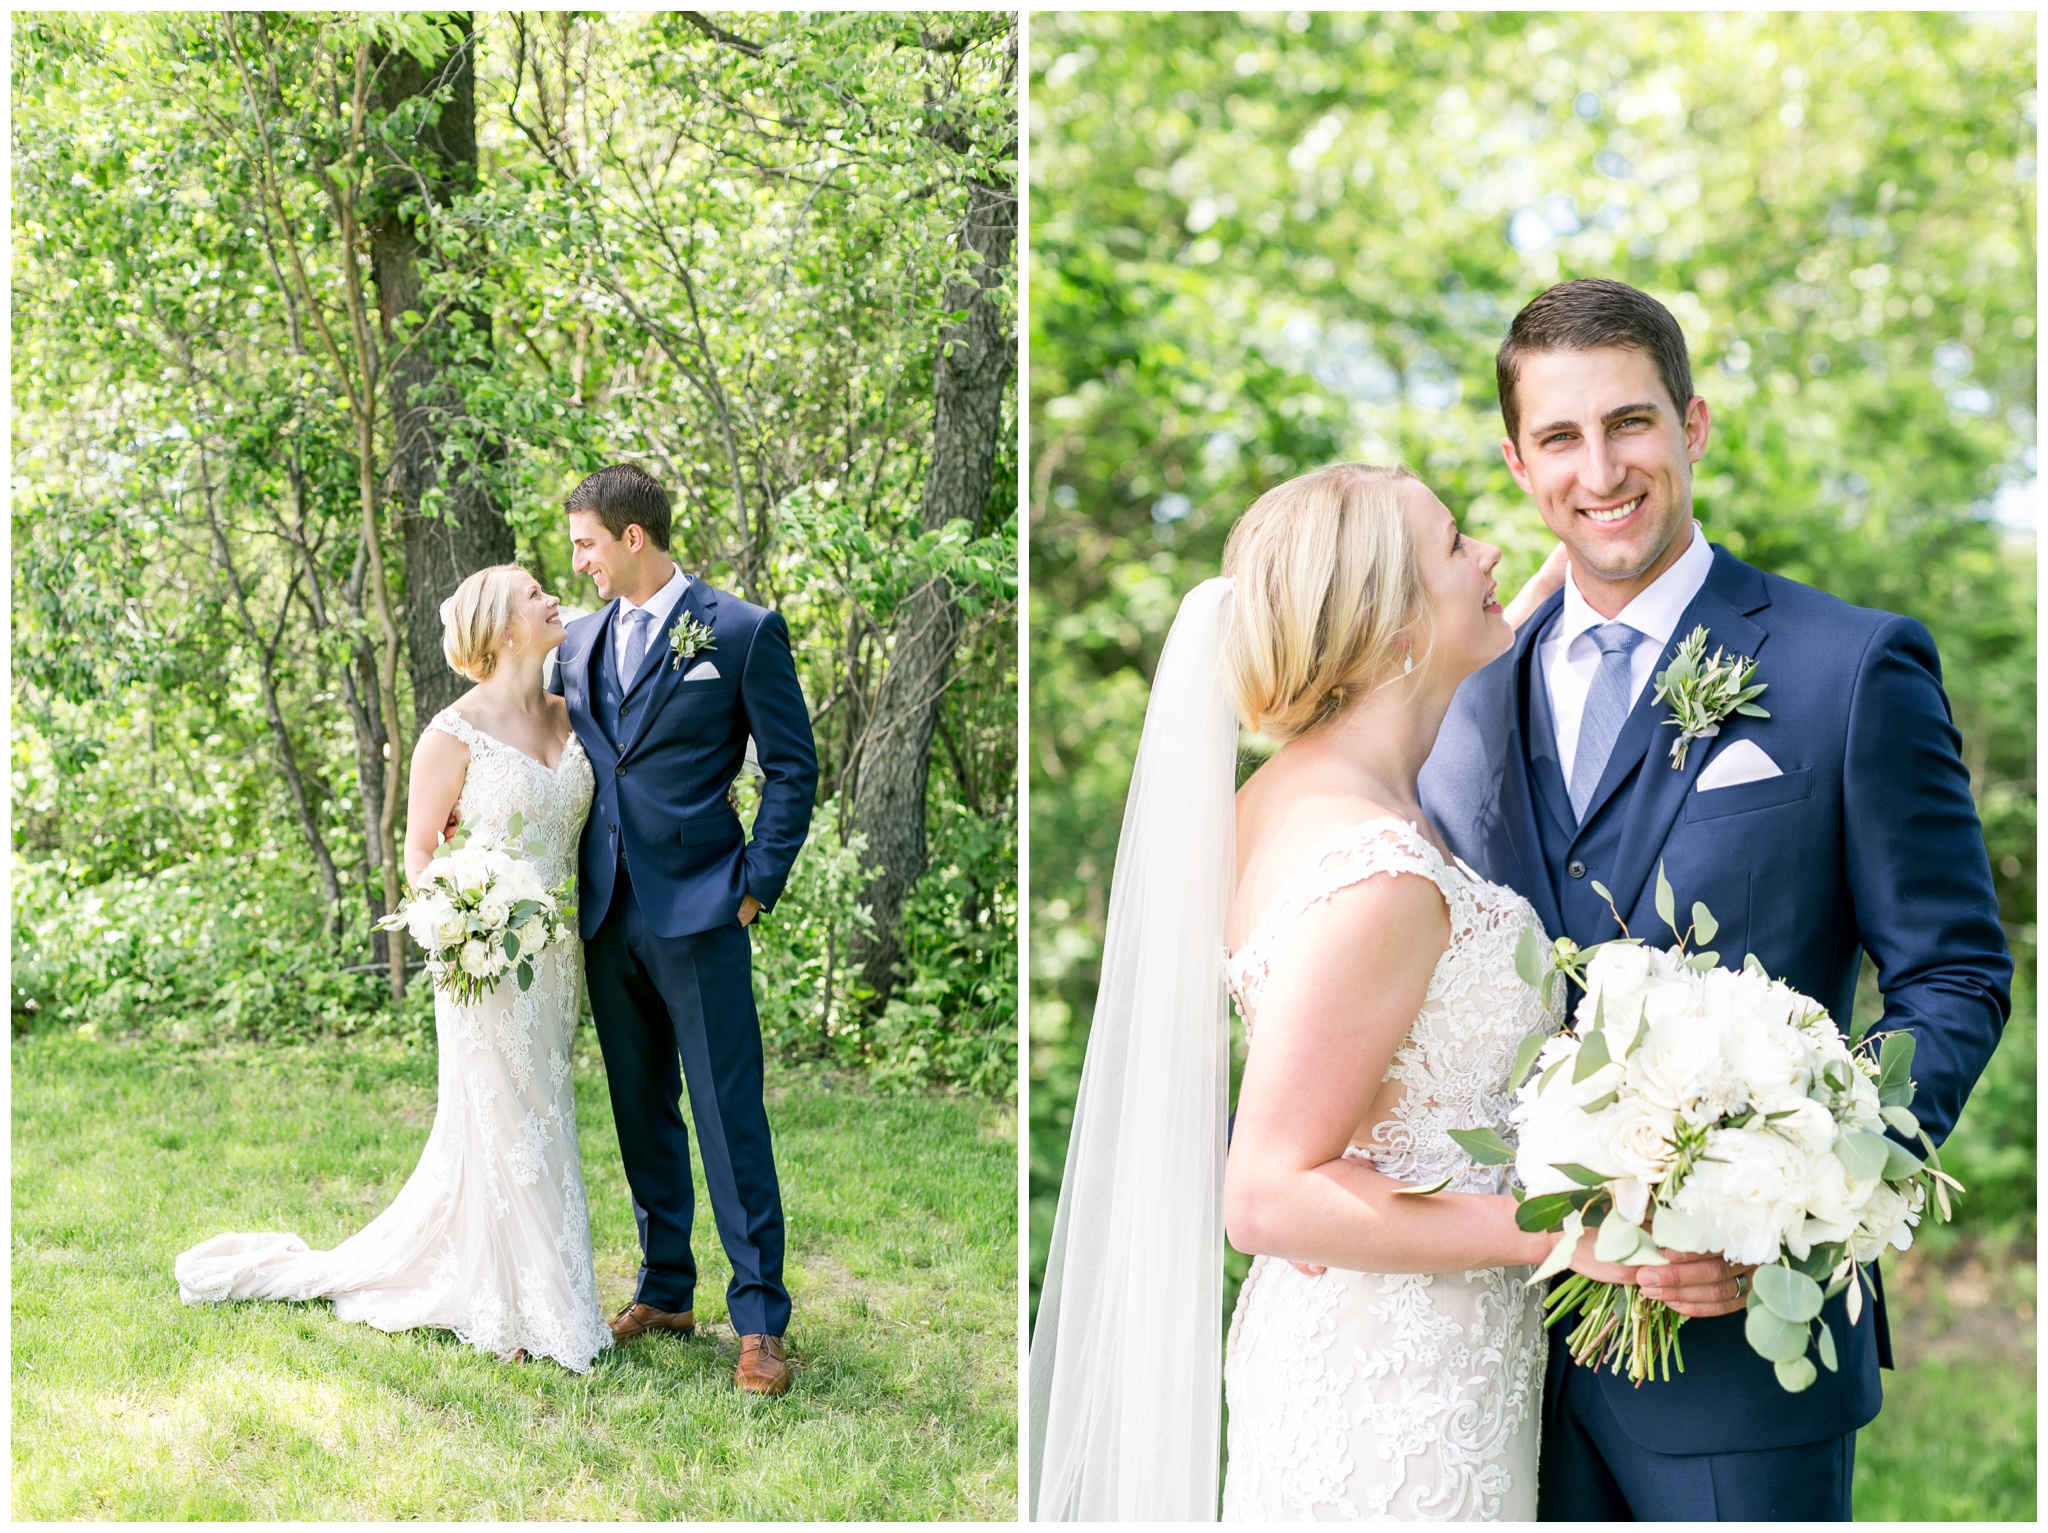 private_estate_wedding_stoughton_wisconsin_wedding_caynay_photo_3838.jpg